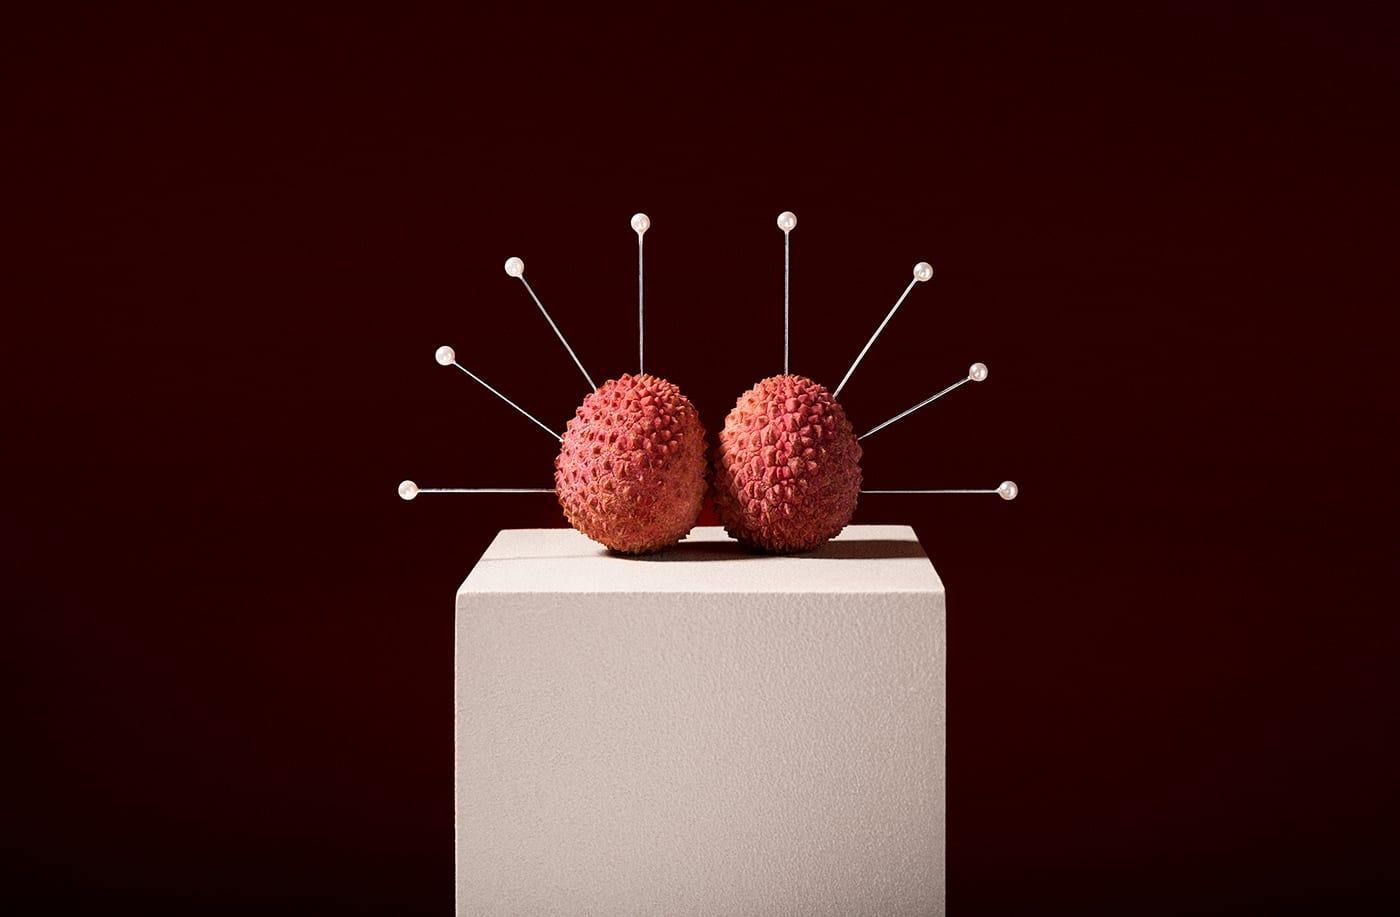 Conceptual, Bold, Artistic Imagemaking By Daniel Forero (Acupuncture) | Yellowtrace